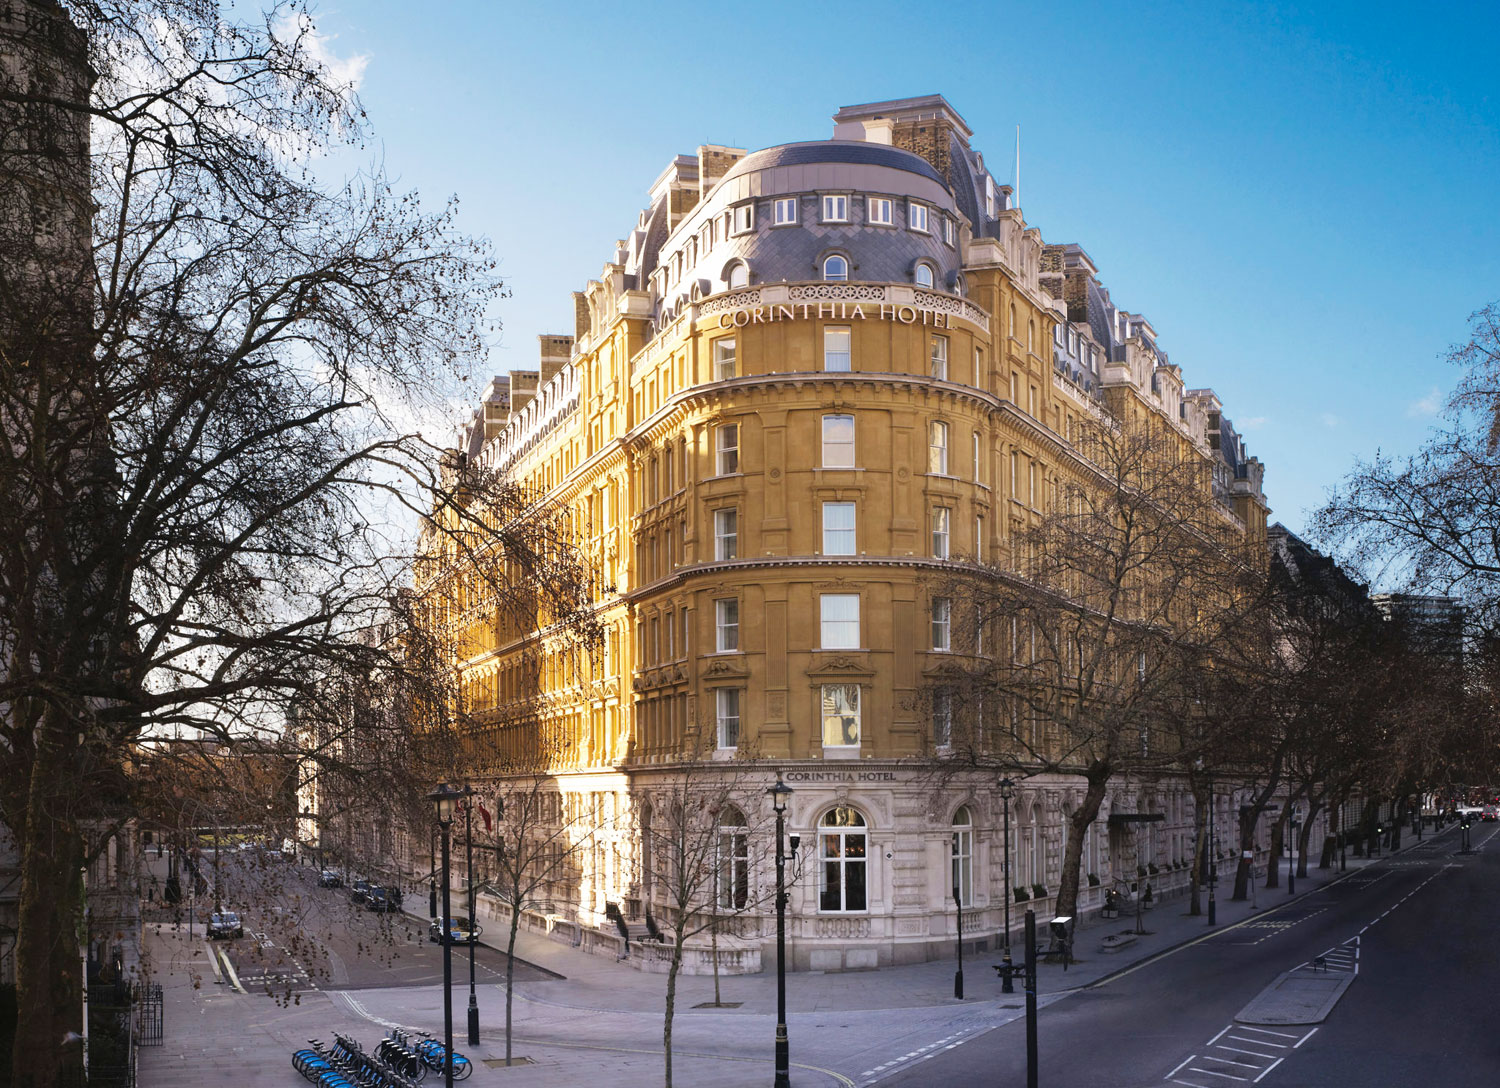 £11.25 Million Private Residence in the Corinthia Hotel London